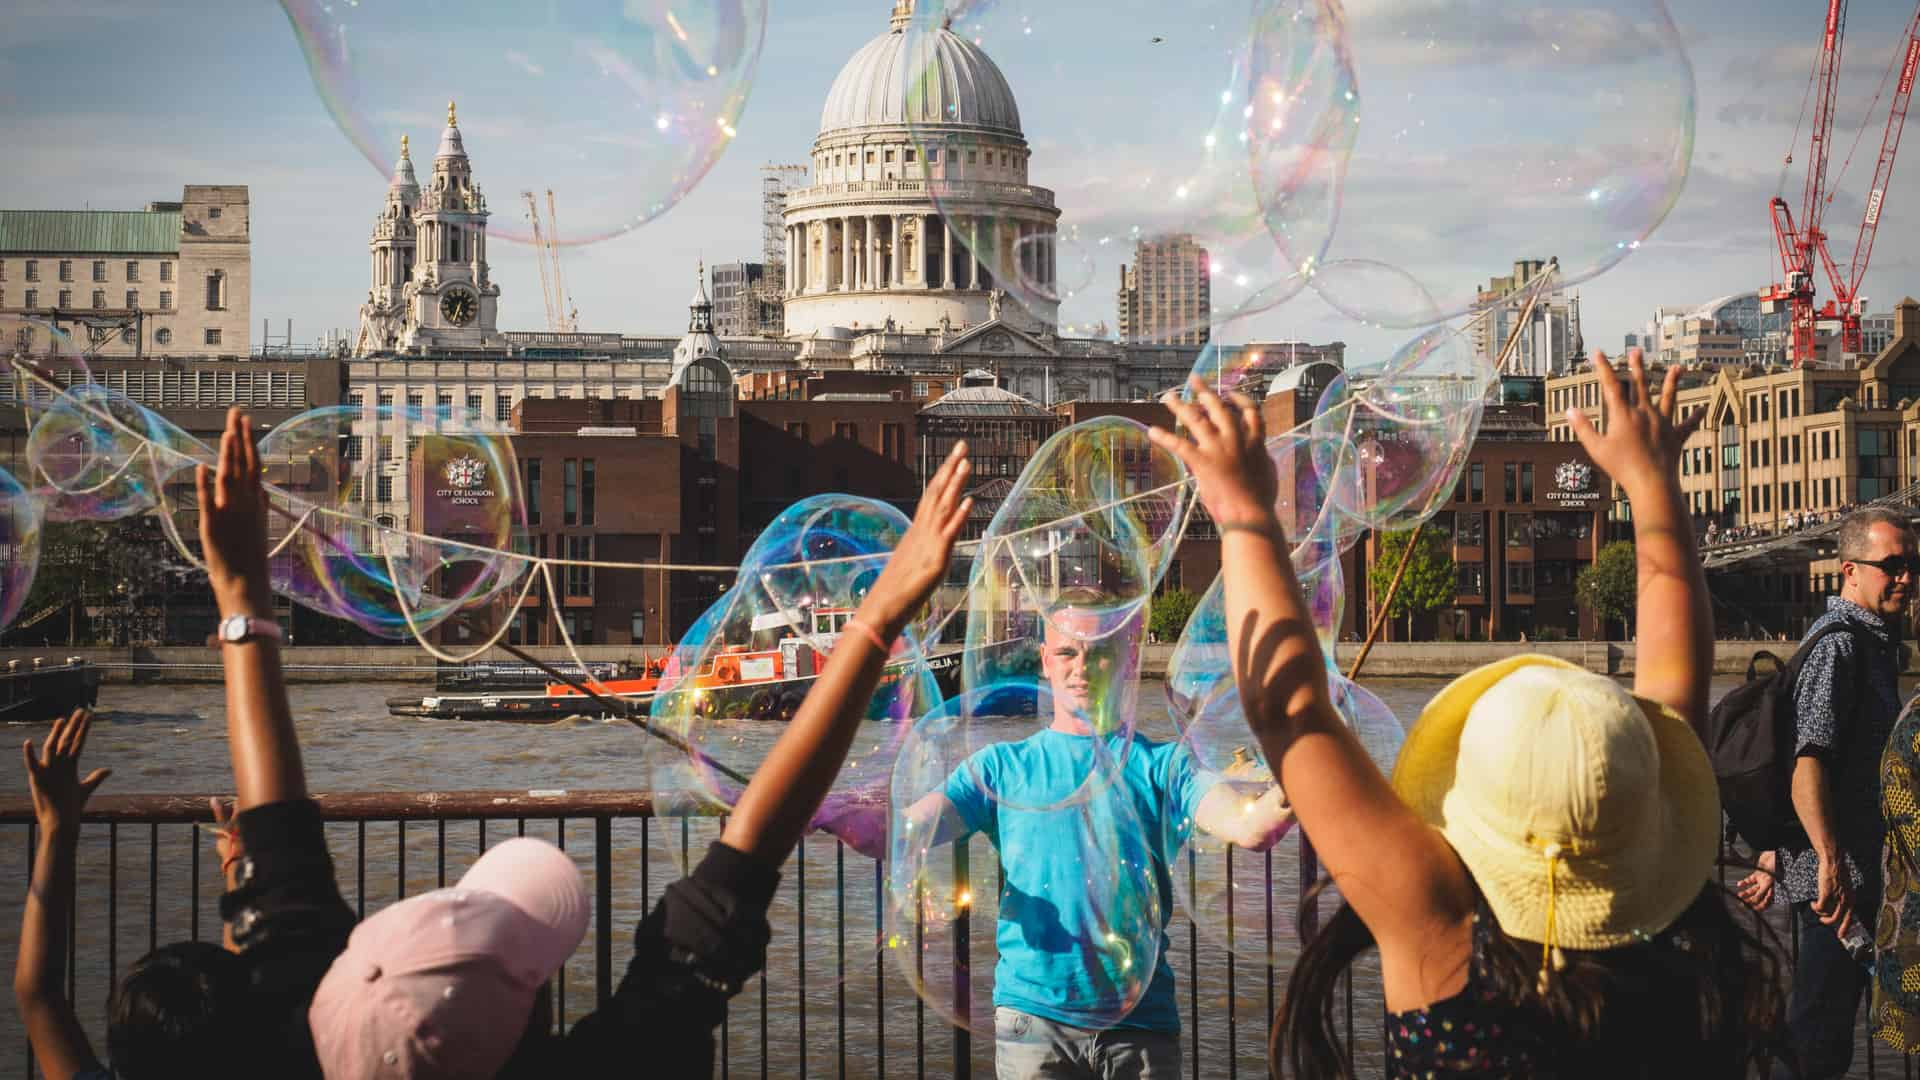 Happy kids having fun with soap bubbles on South Bank of the Thames river, with St. Paul's Cathedral in London, U.K.